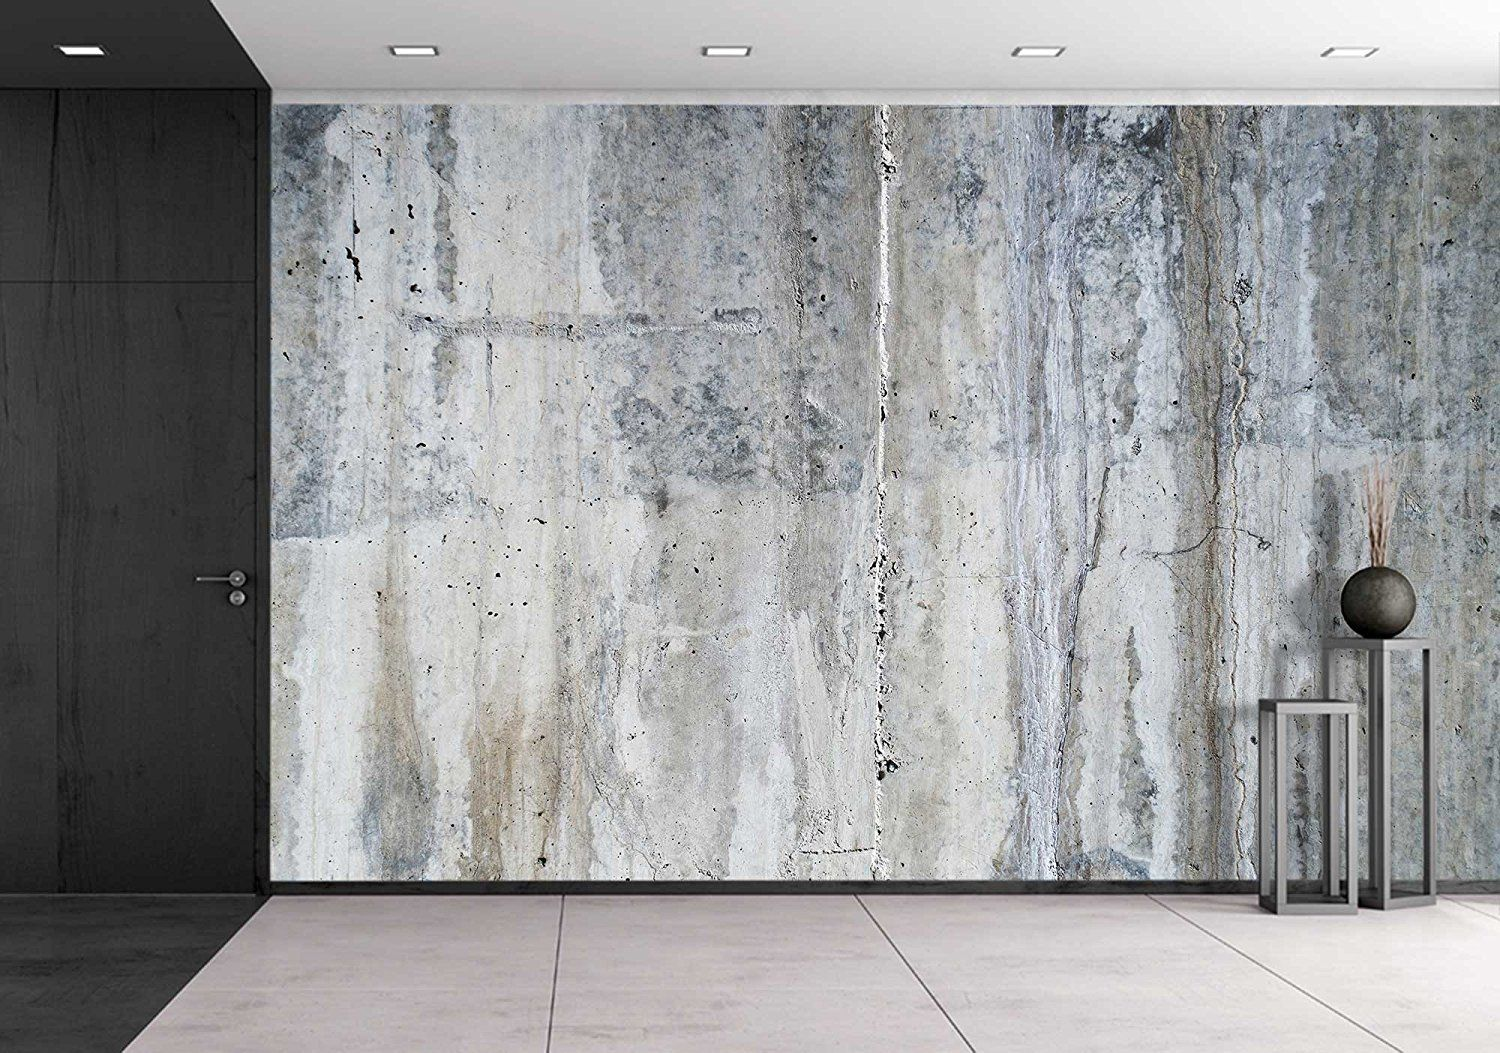 wall26 Grunge Concrete Wall Removable Wall Mural